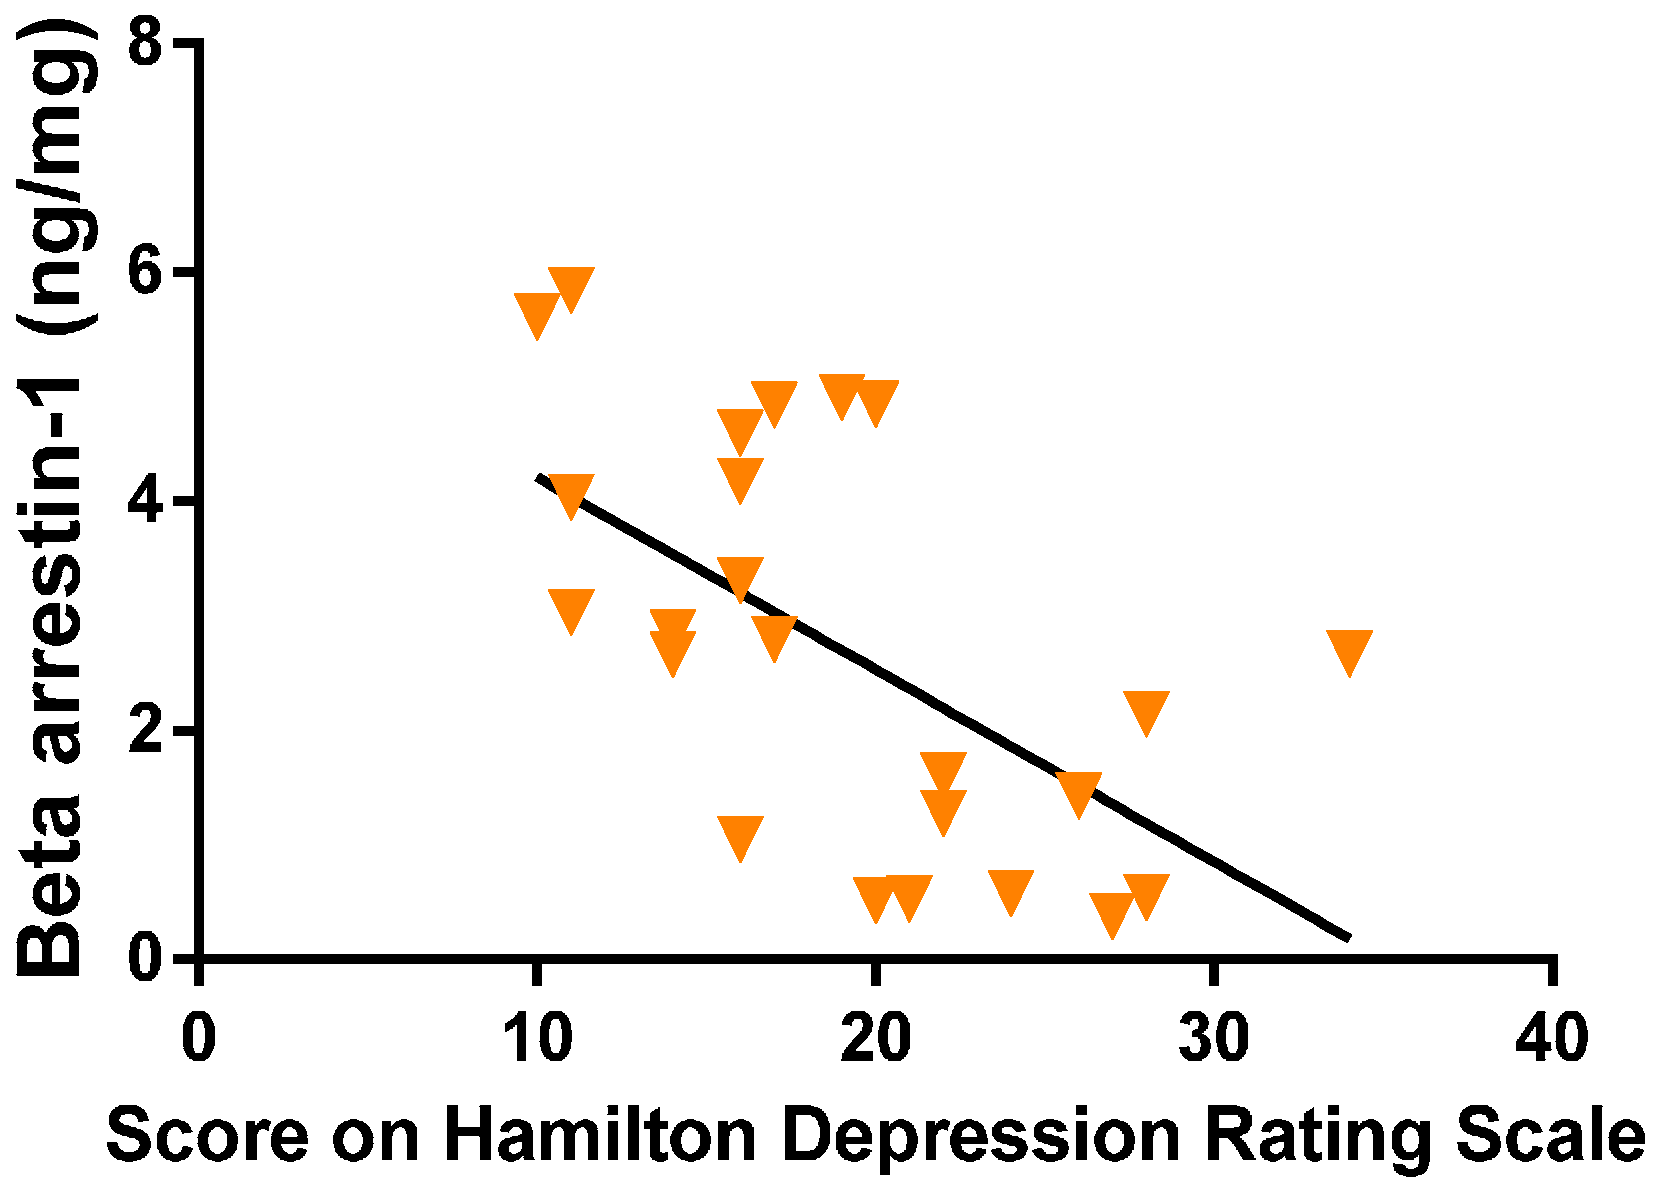 review of hamilton depression rating Literature review service other vs hamilton depression asberg depression rating scale, he believes that the hamilton depression scale is superior in.